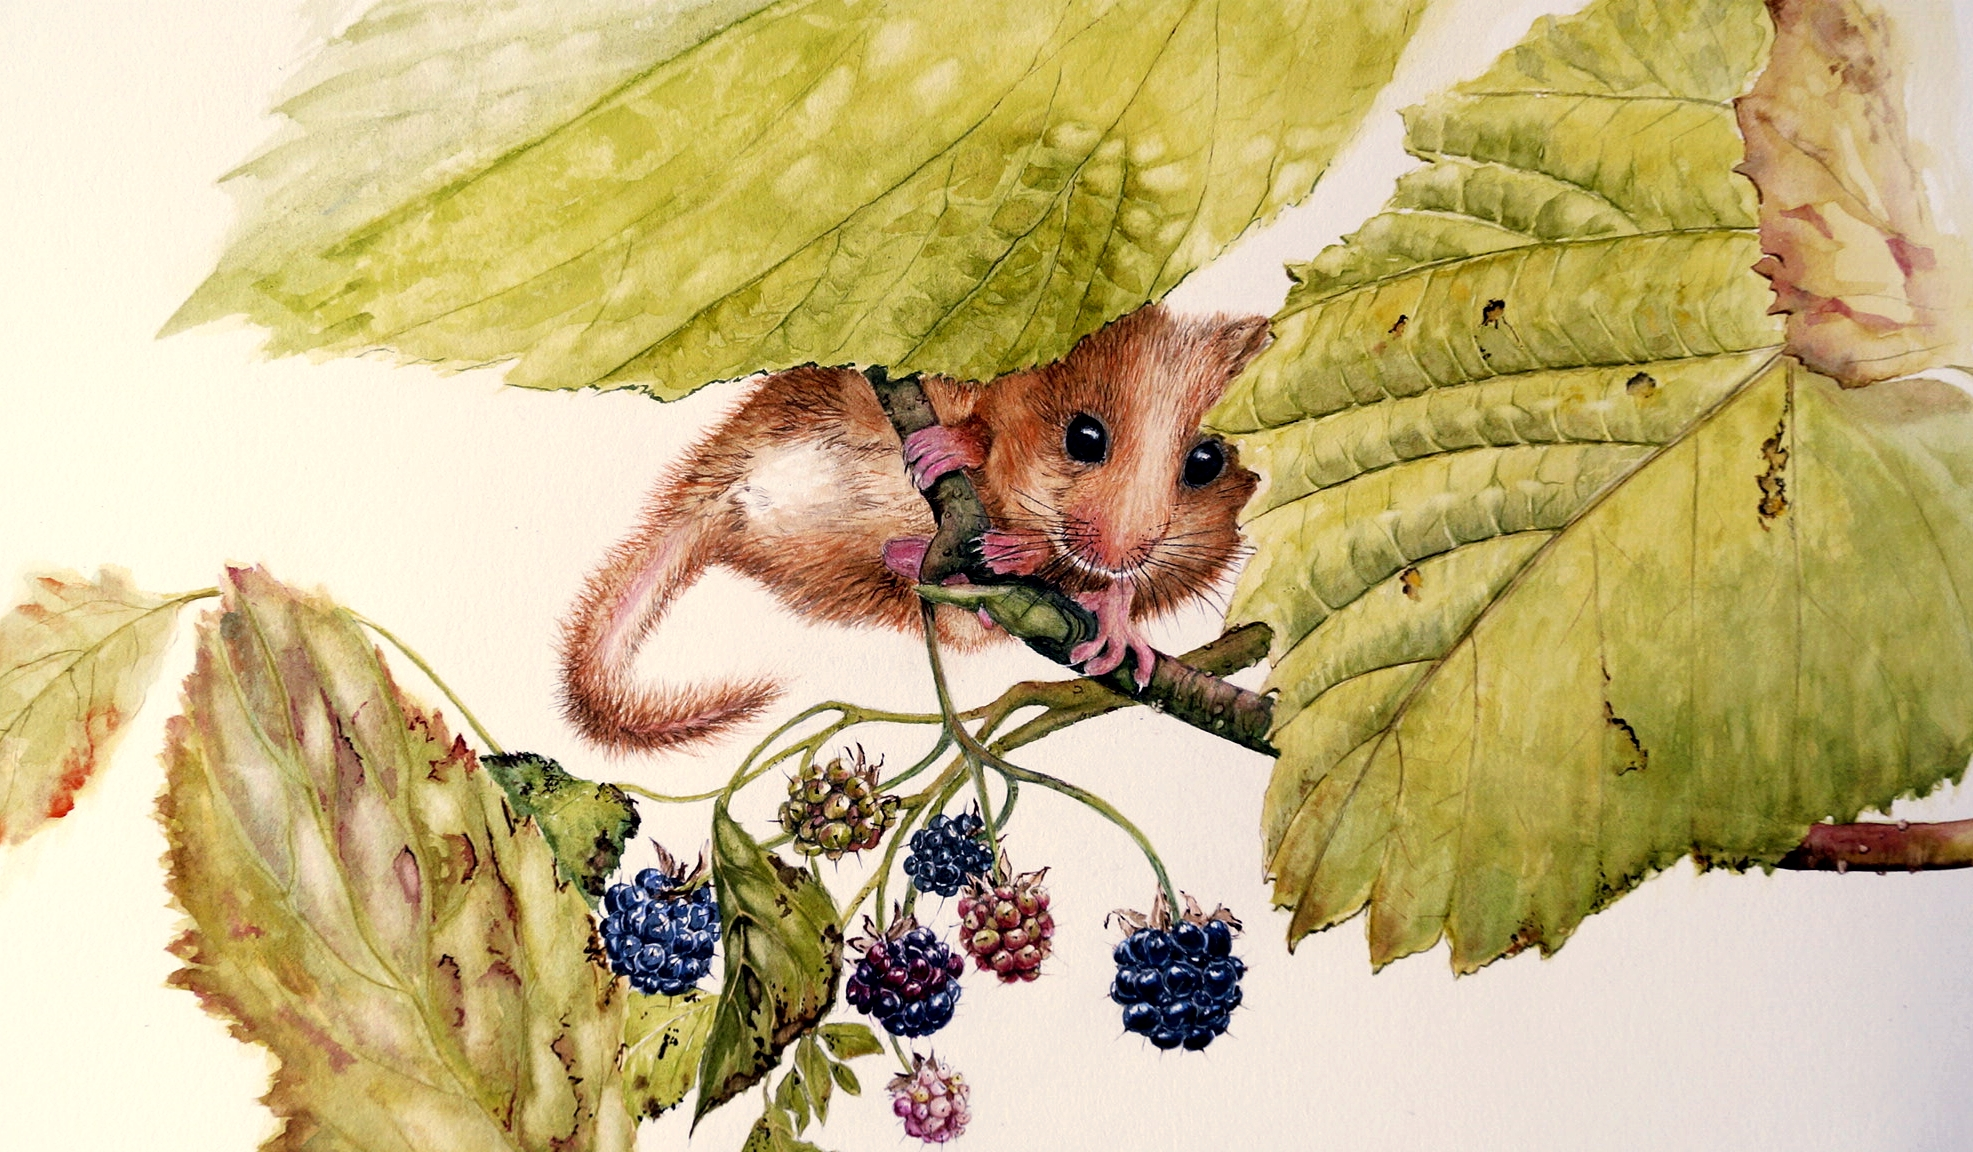 Dormouse and berries